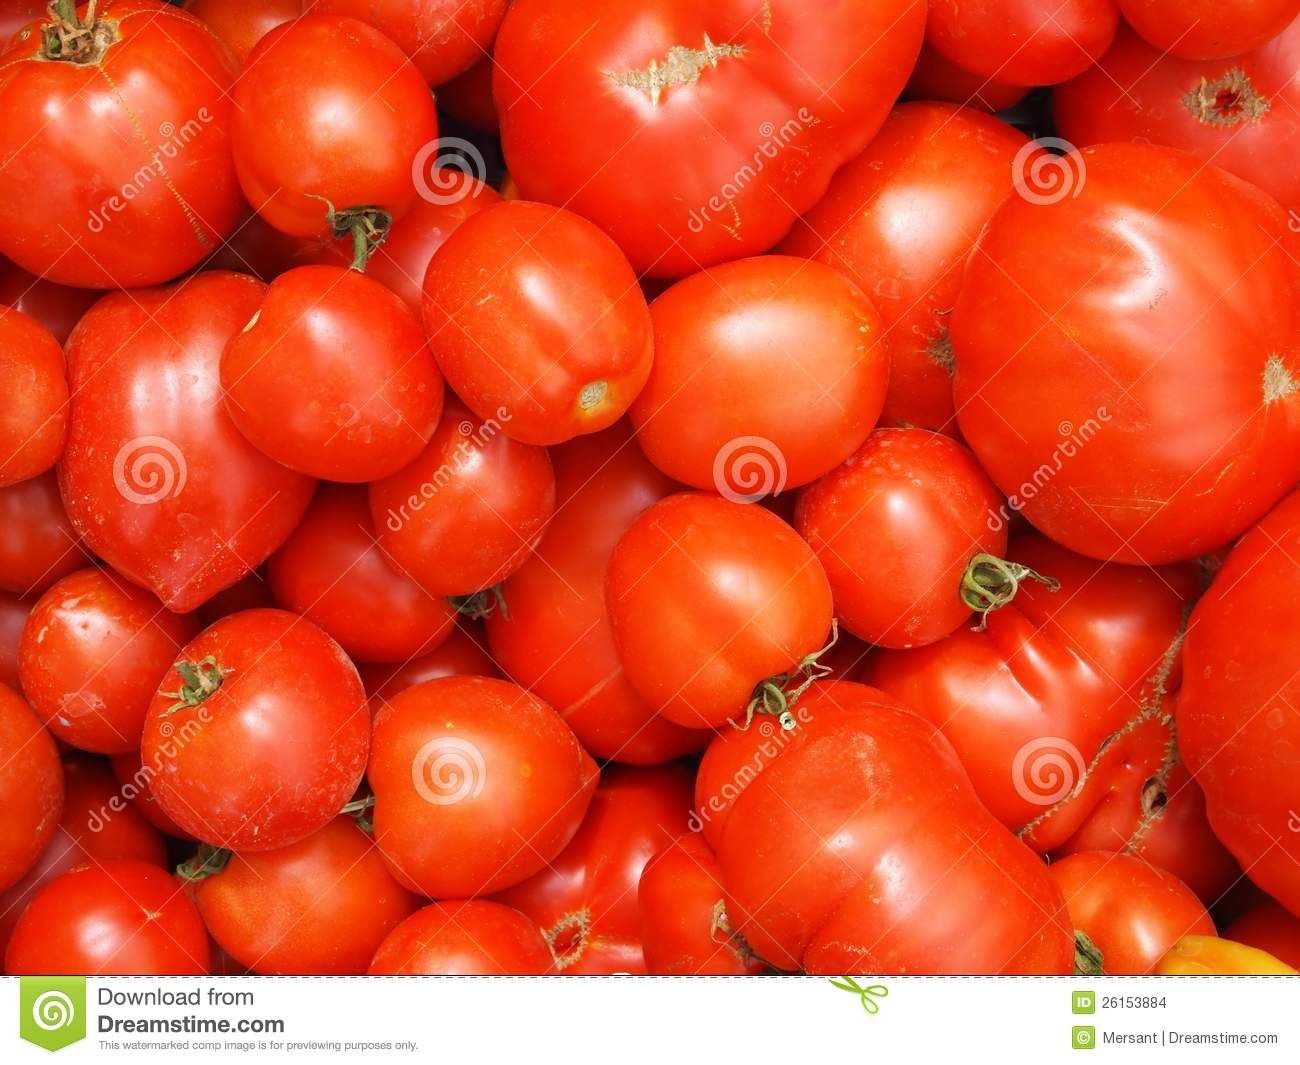 Many fresh tomatoes without background